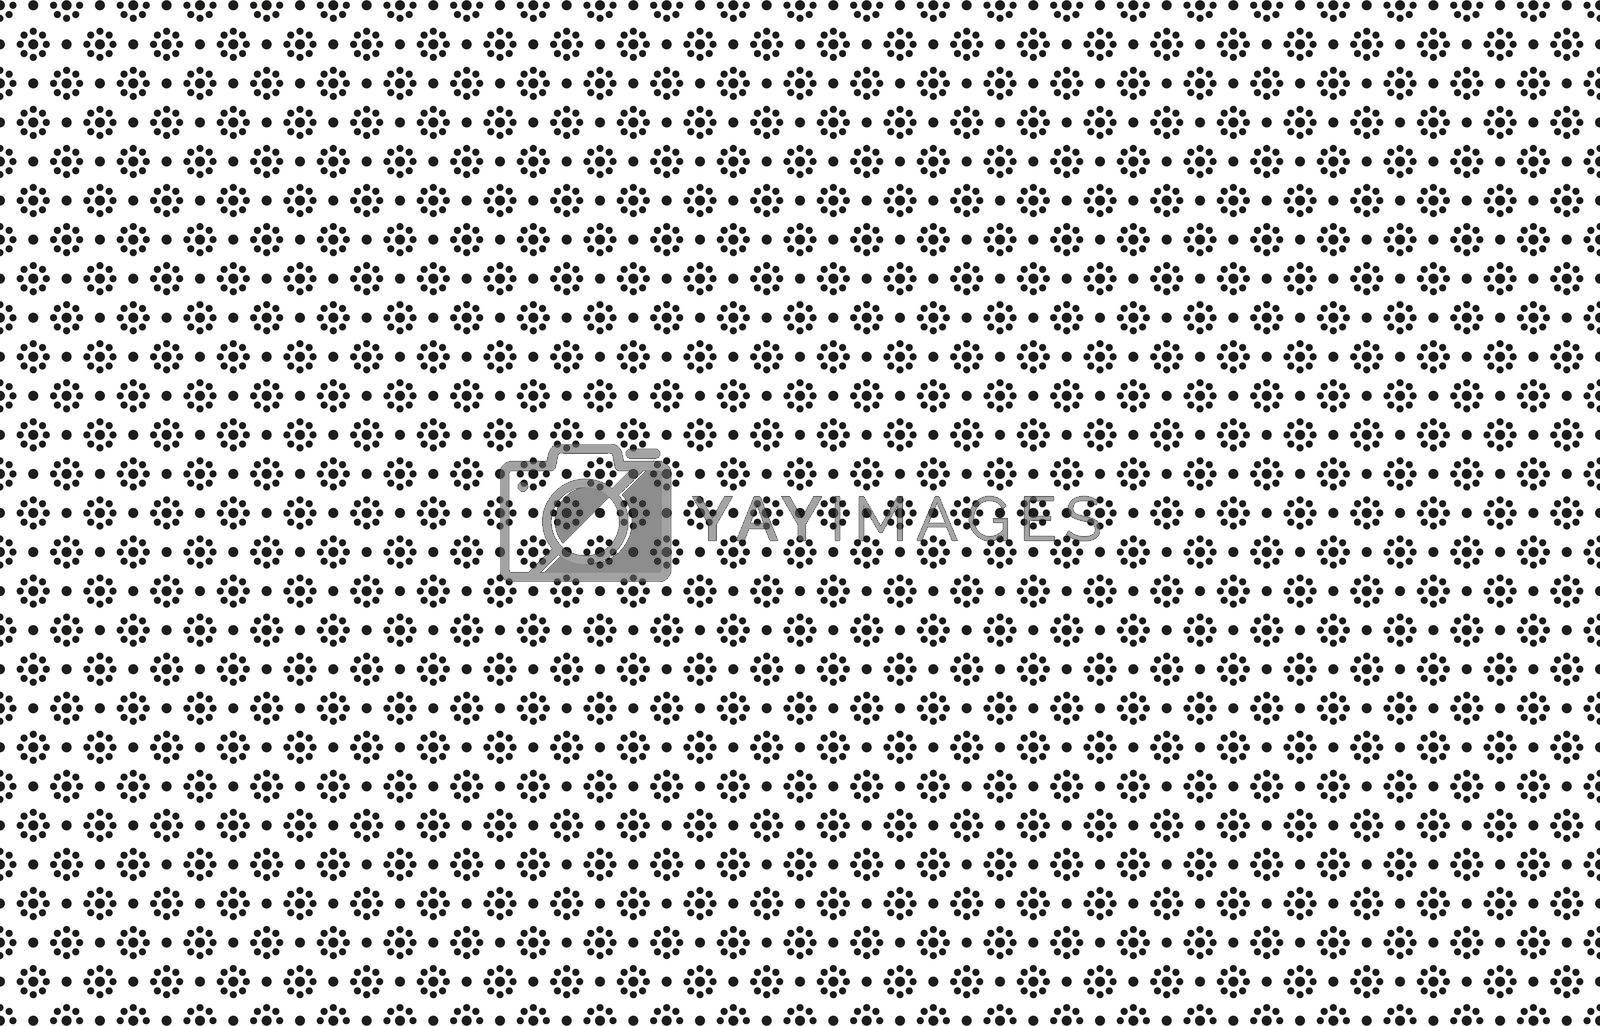 Dots pattern, minimal dot pattern, Polka dot pattern design, polka dot seamless pattern, polka dots classic blue for fabric print, garment, paper, scrapbook, textile, background creative any templates